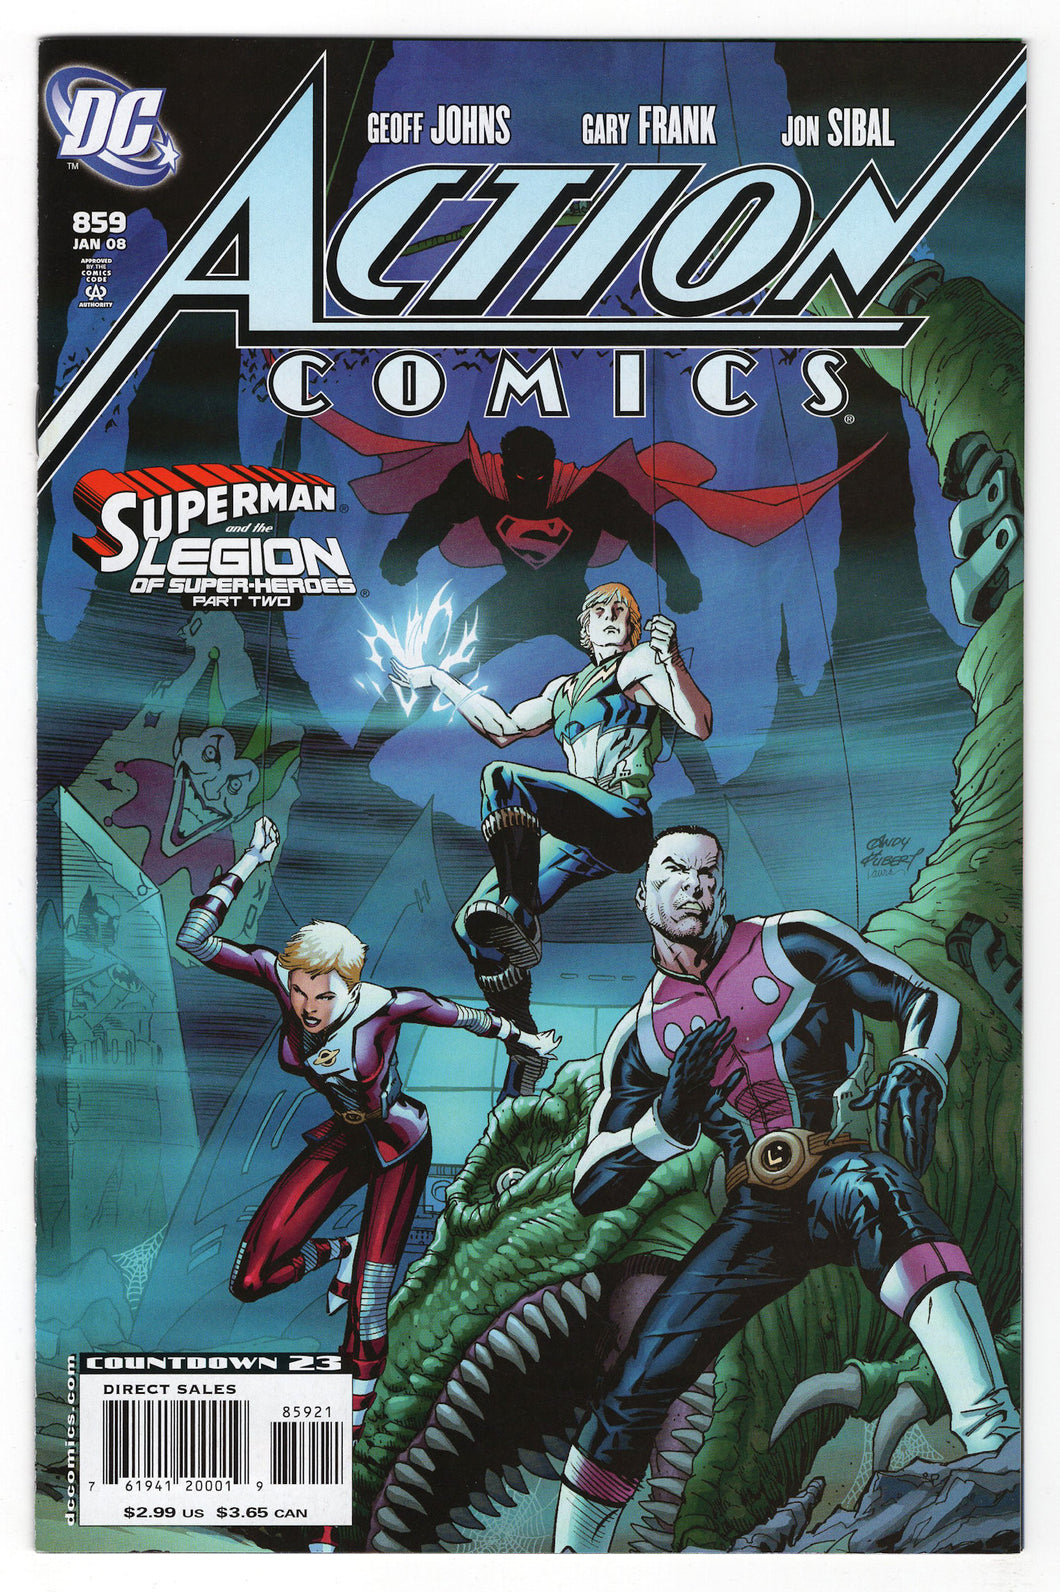 Action Comics #859 Andy Kubert Variant Front Cover